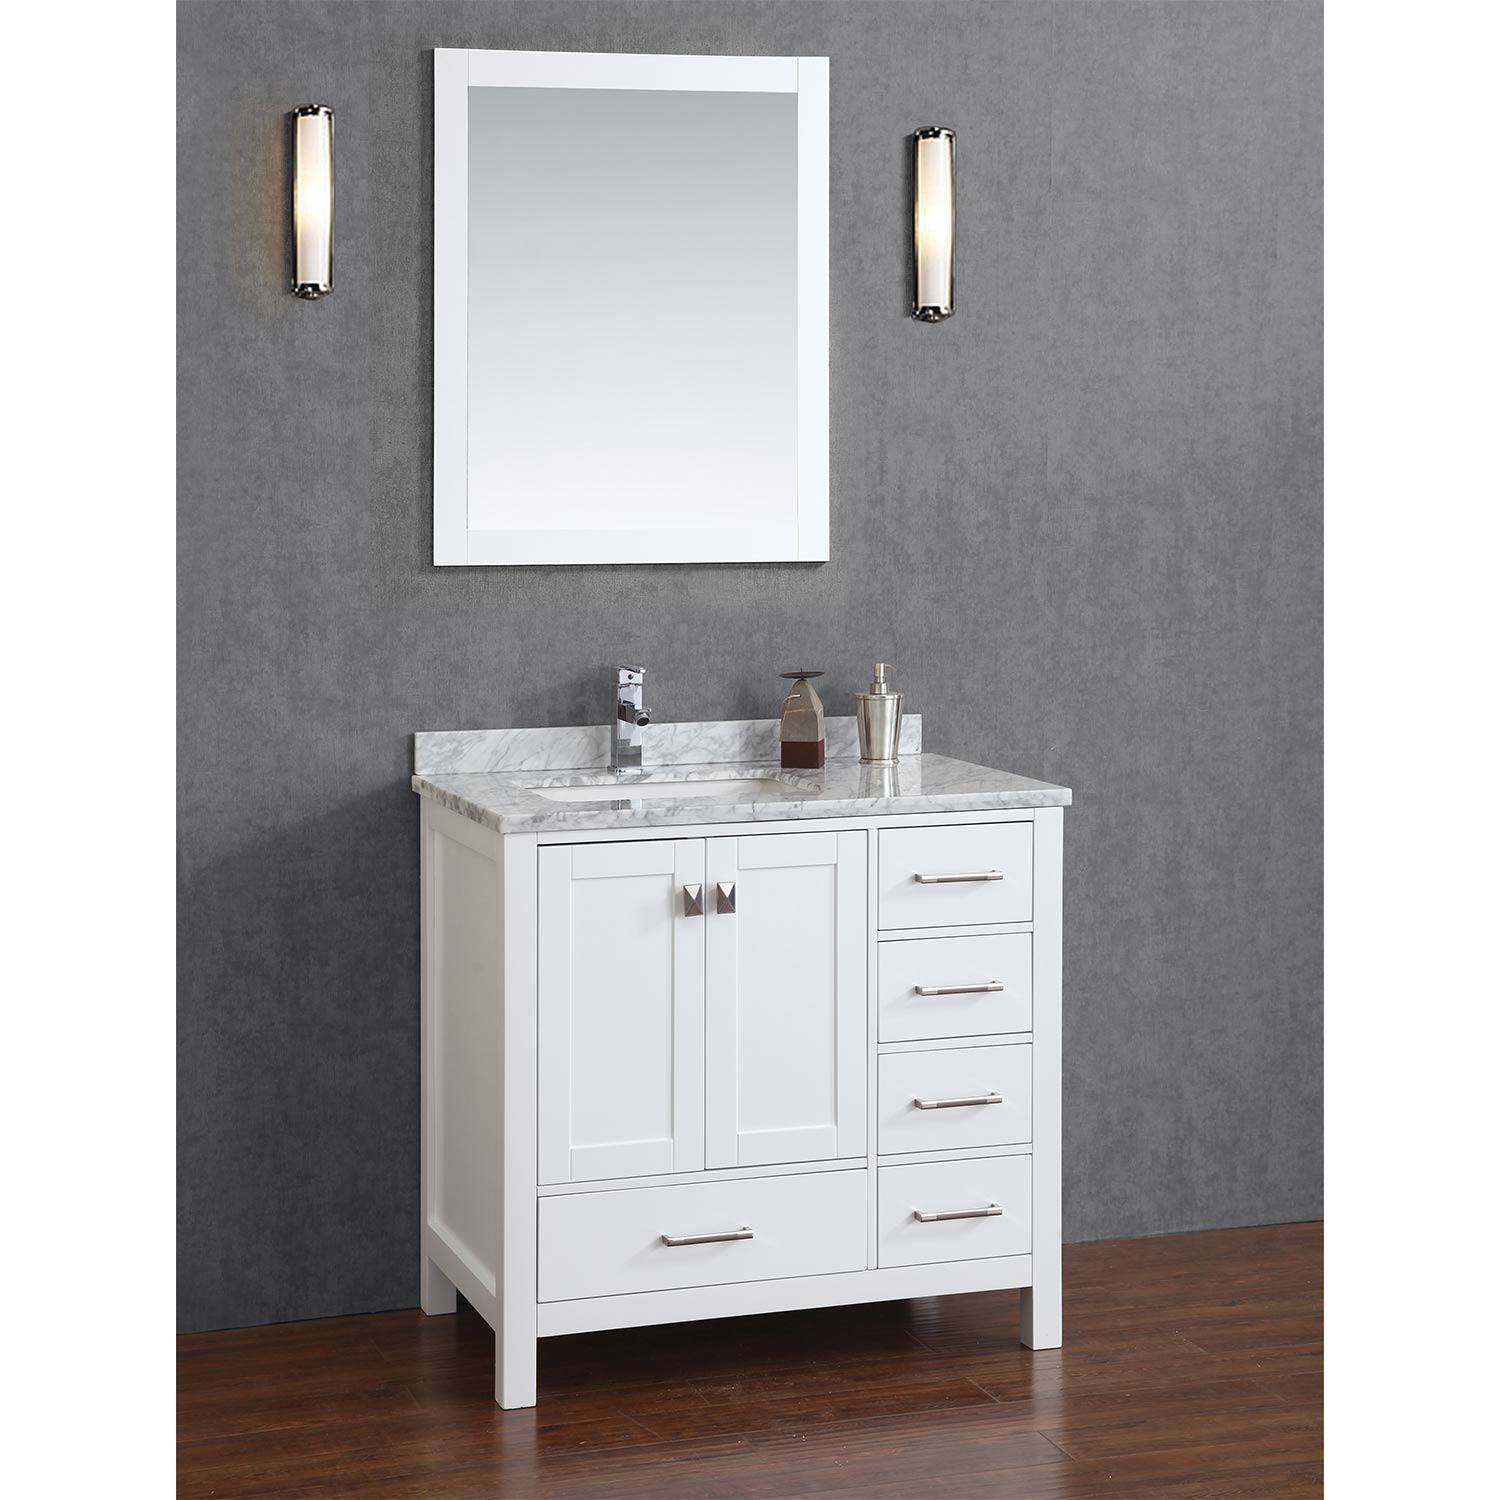 Buy vincent 36 inch solid wood single bathroom vanity in for Cabinets and vanities